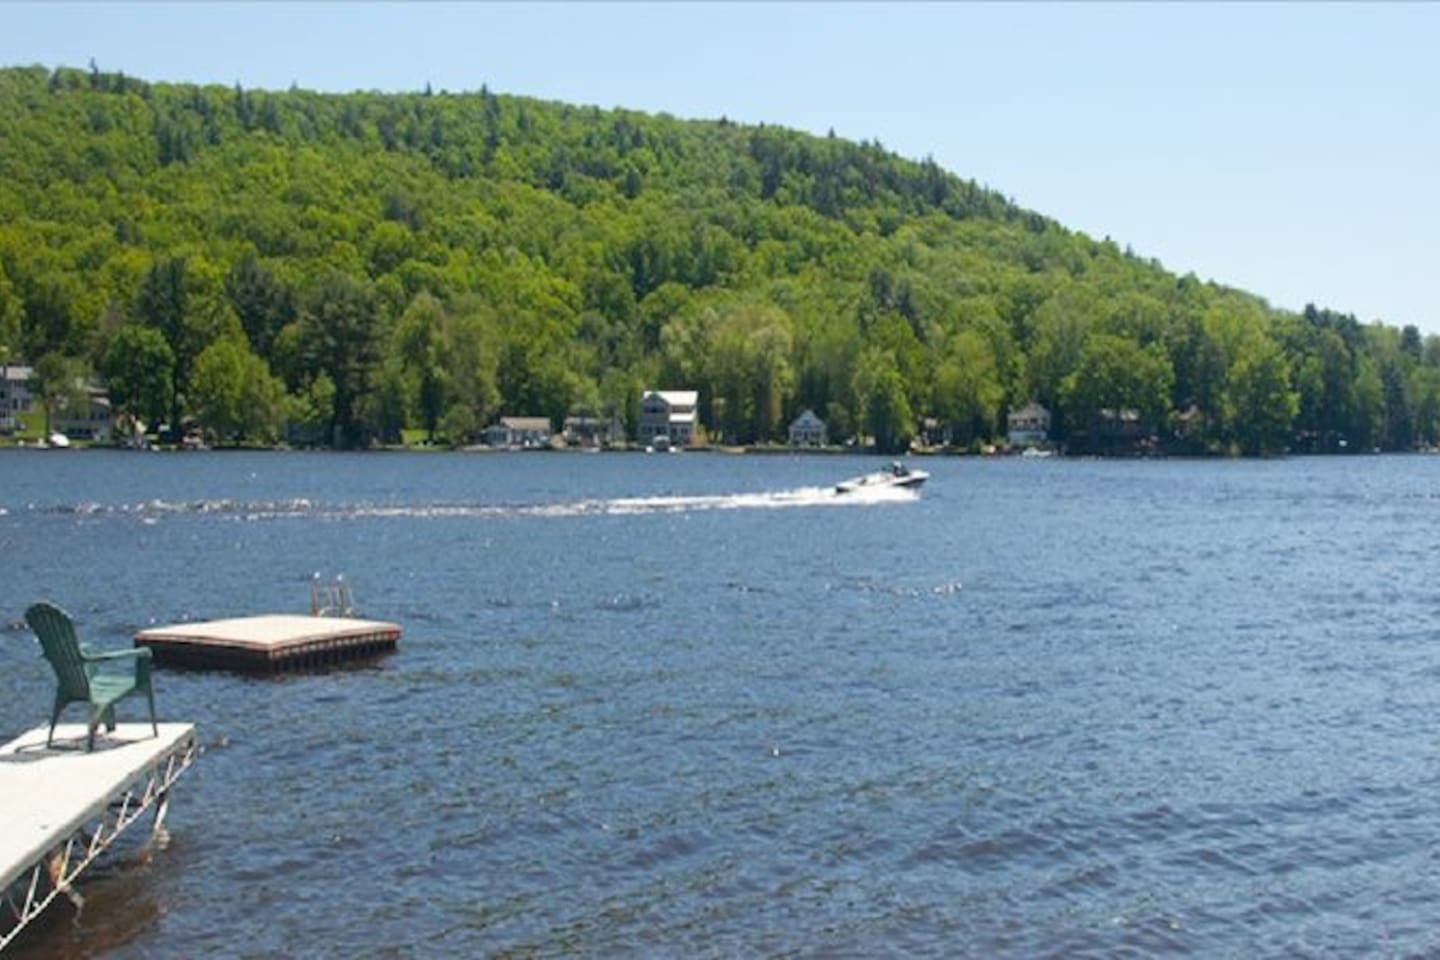 Fully recreational lake. Our property has plenty of dock space and non motorized boats to enjoy it!